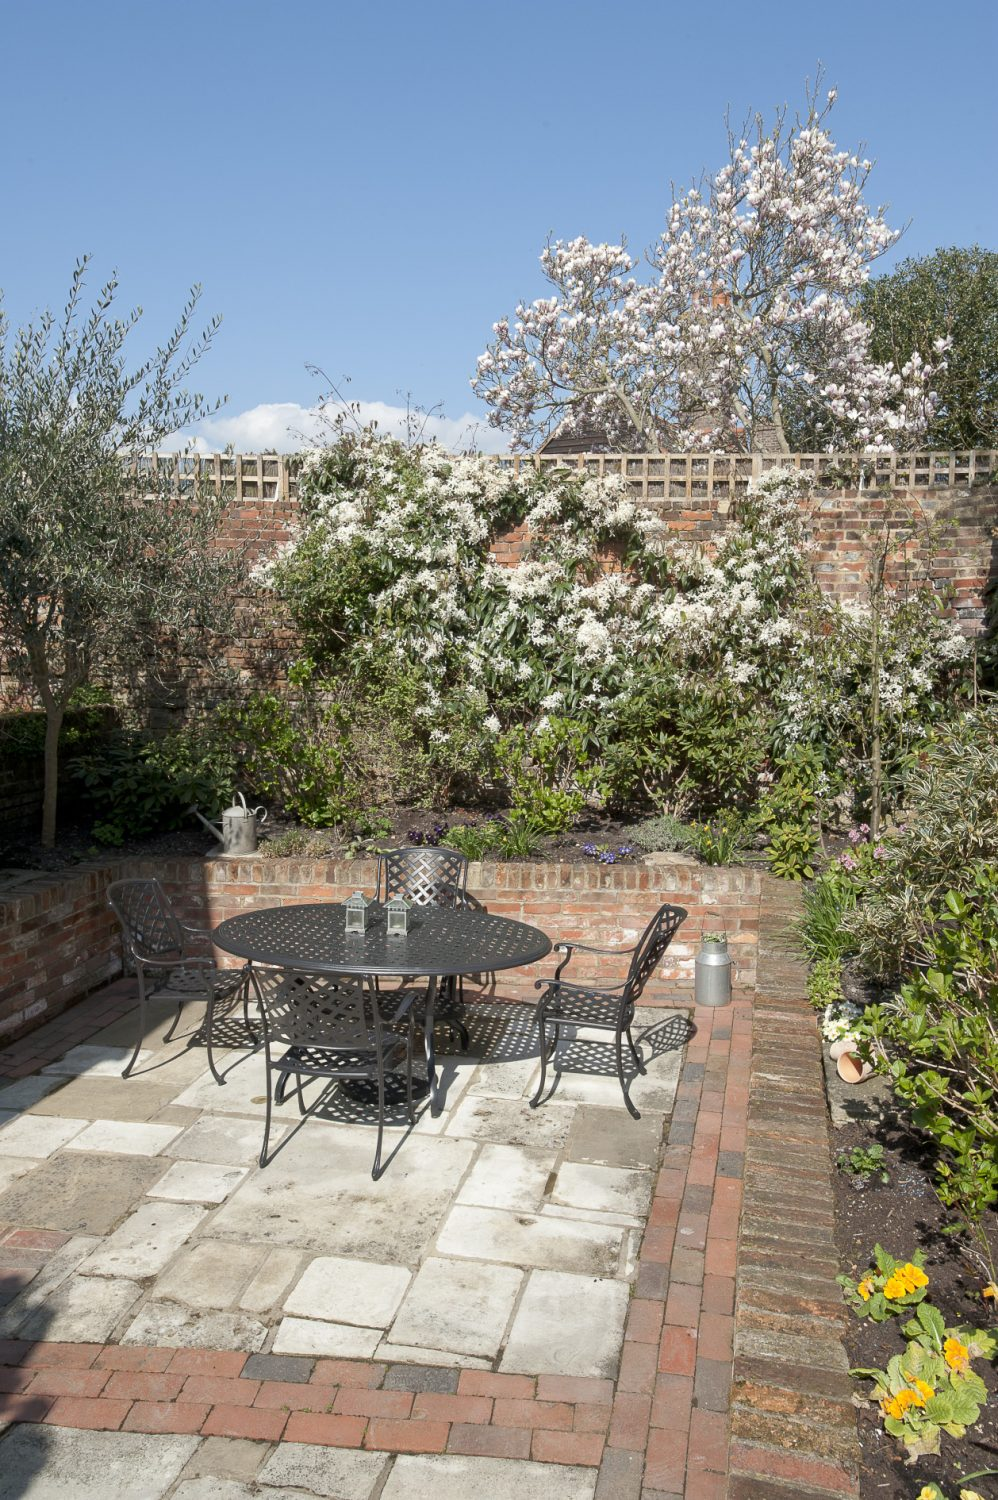 The peaceful, sheltered courtyard features high walls covered in climbing roses and fragrant clematis armandii. Raised brick beds are planted with hydrangeas, camellias, lavender and pinks